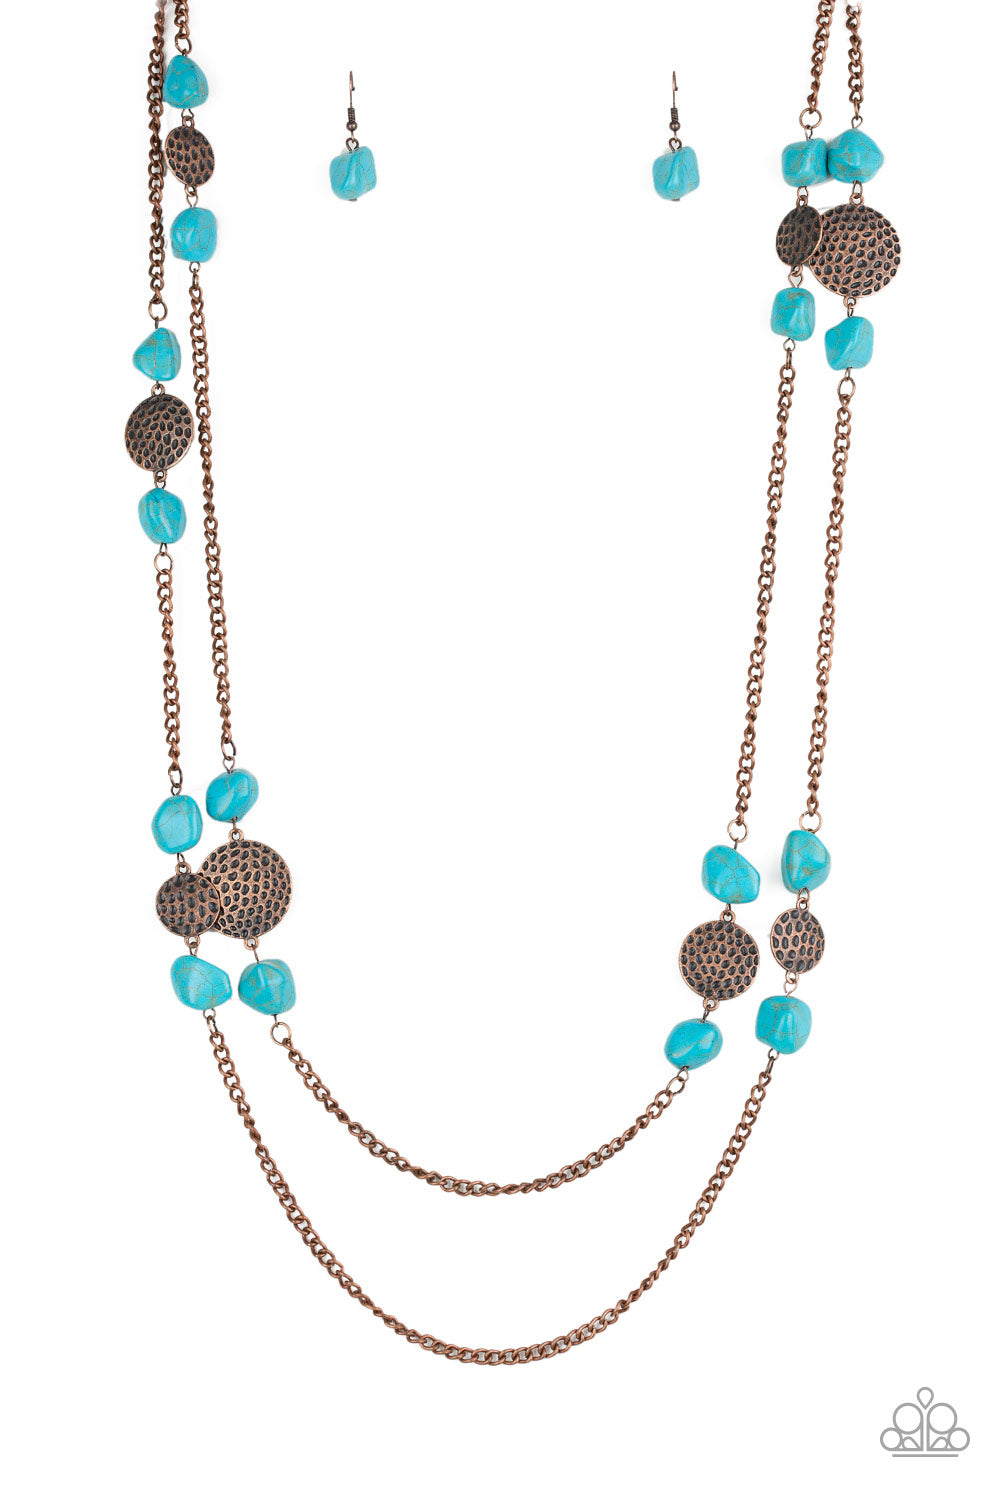 Mountain Movement - Copper Necklace - Paparazzi Accessories - The Bling Peddler